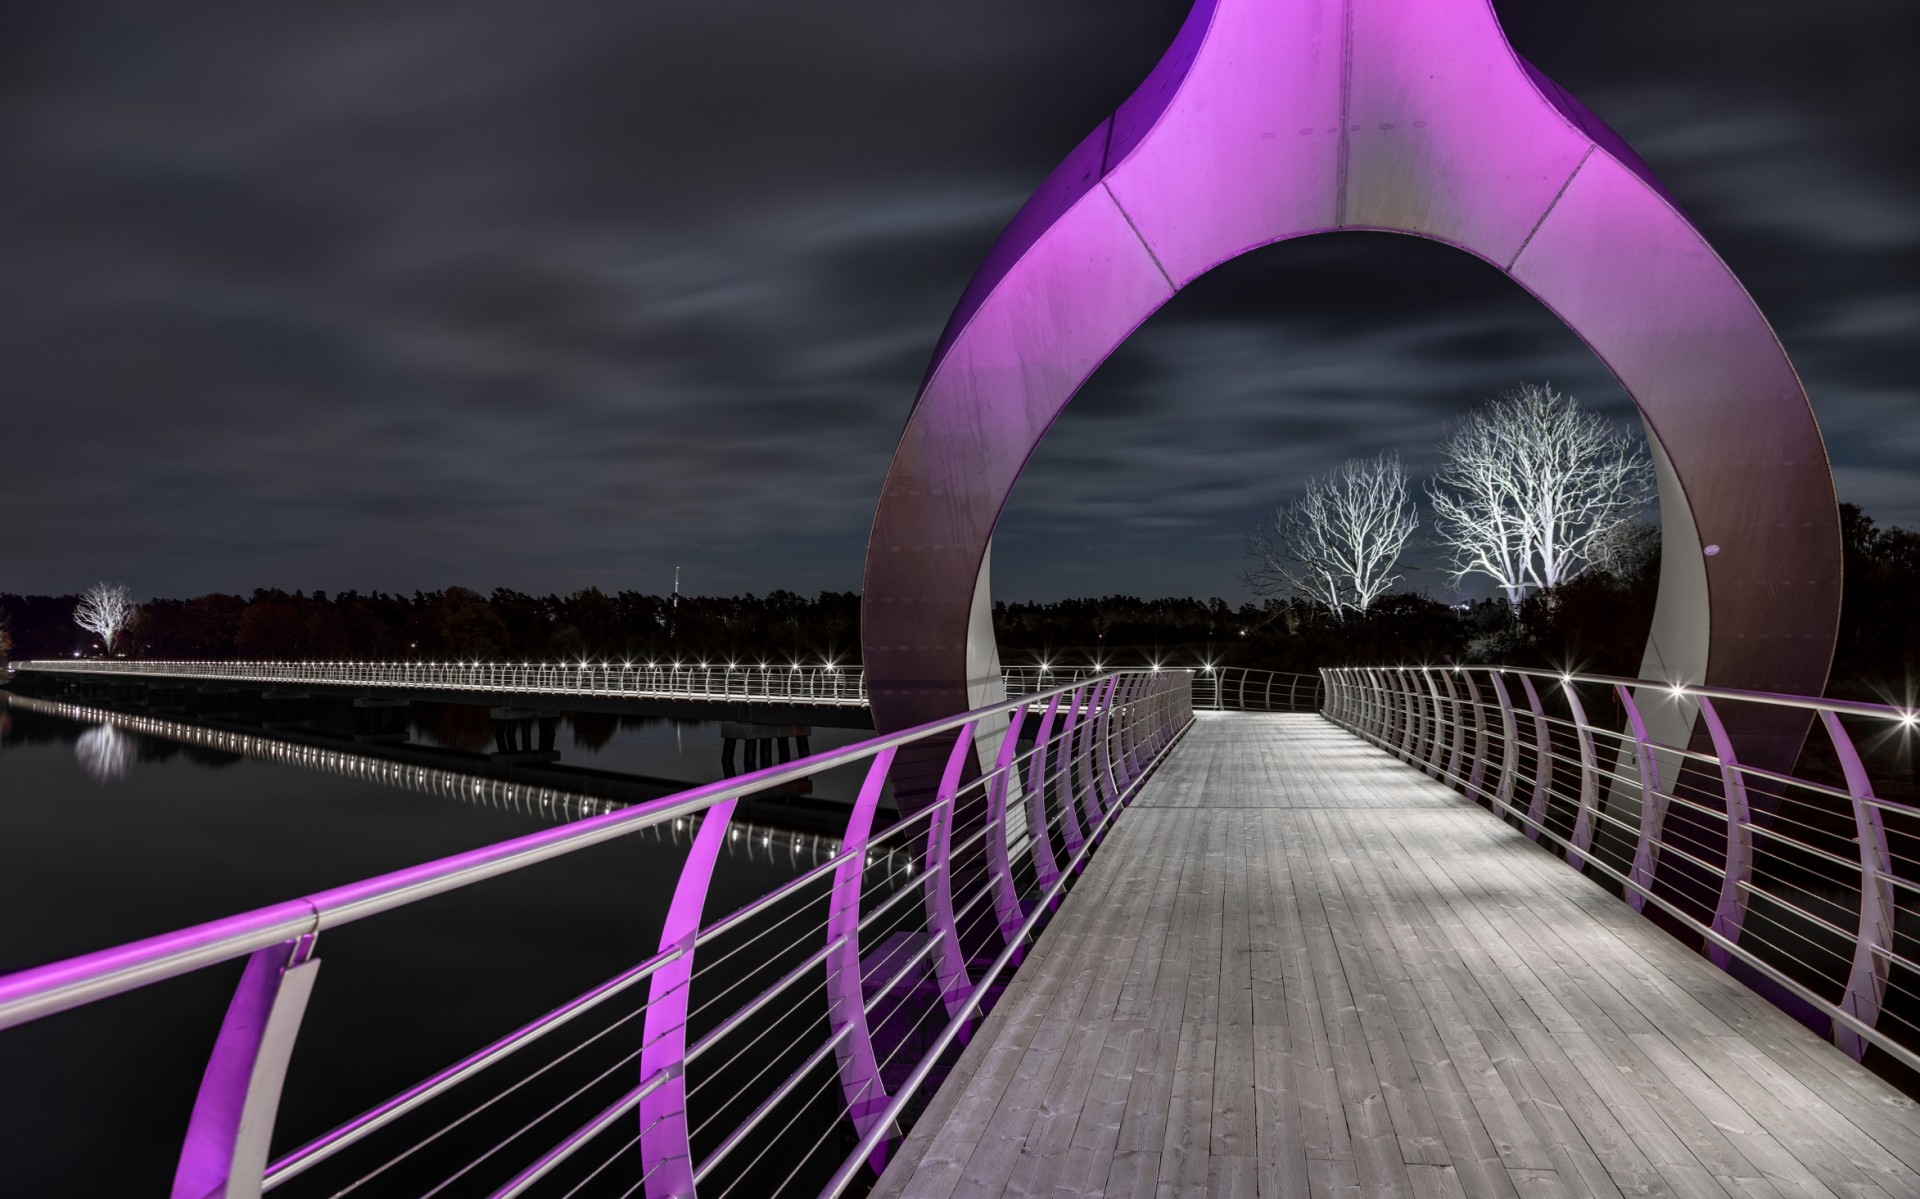 At 756 meters long, the Sölvesborg Bridge is currently the longest bicycle and pedestrian bridge in Europe.